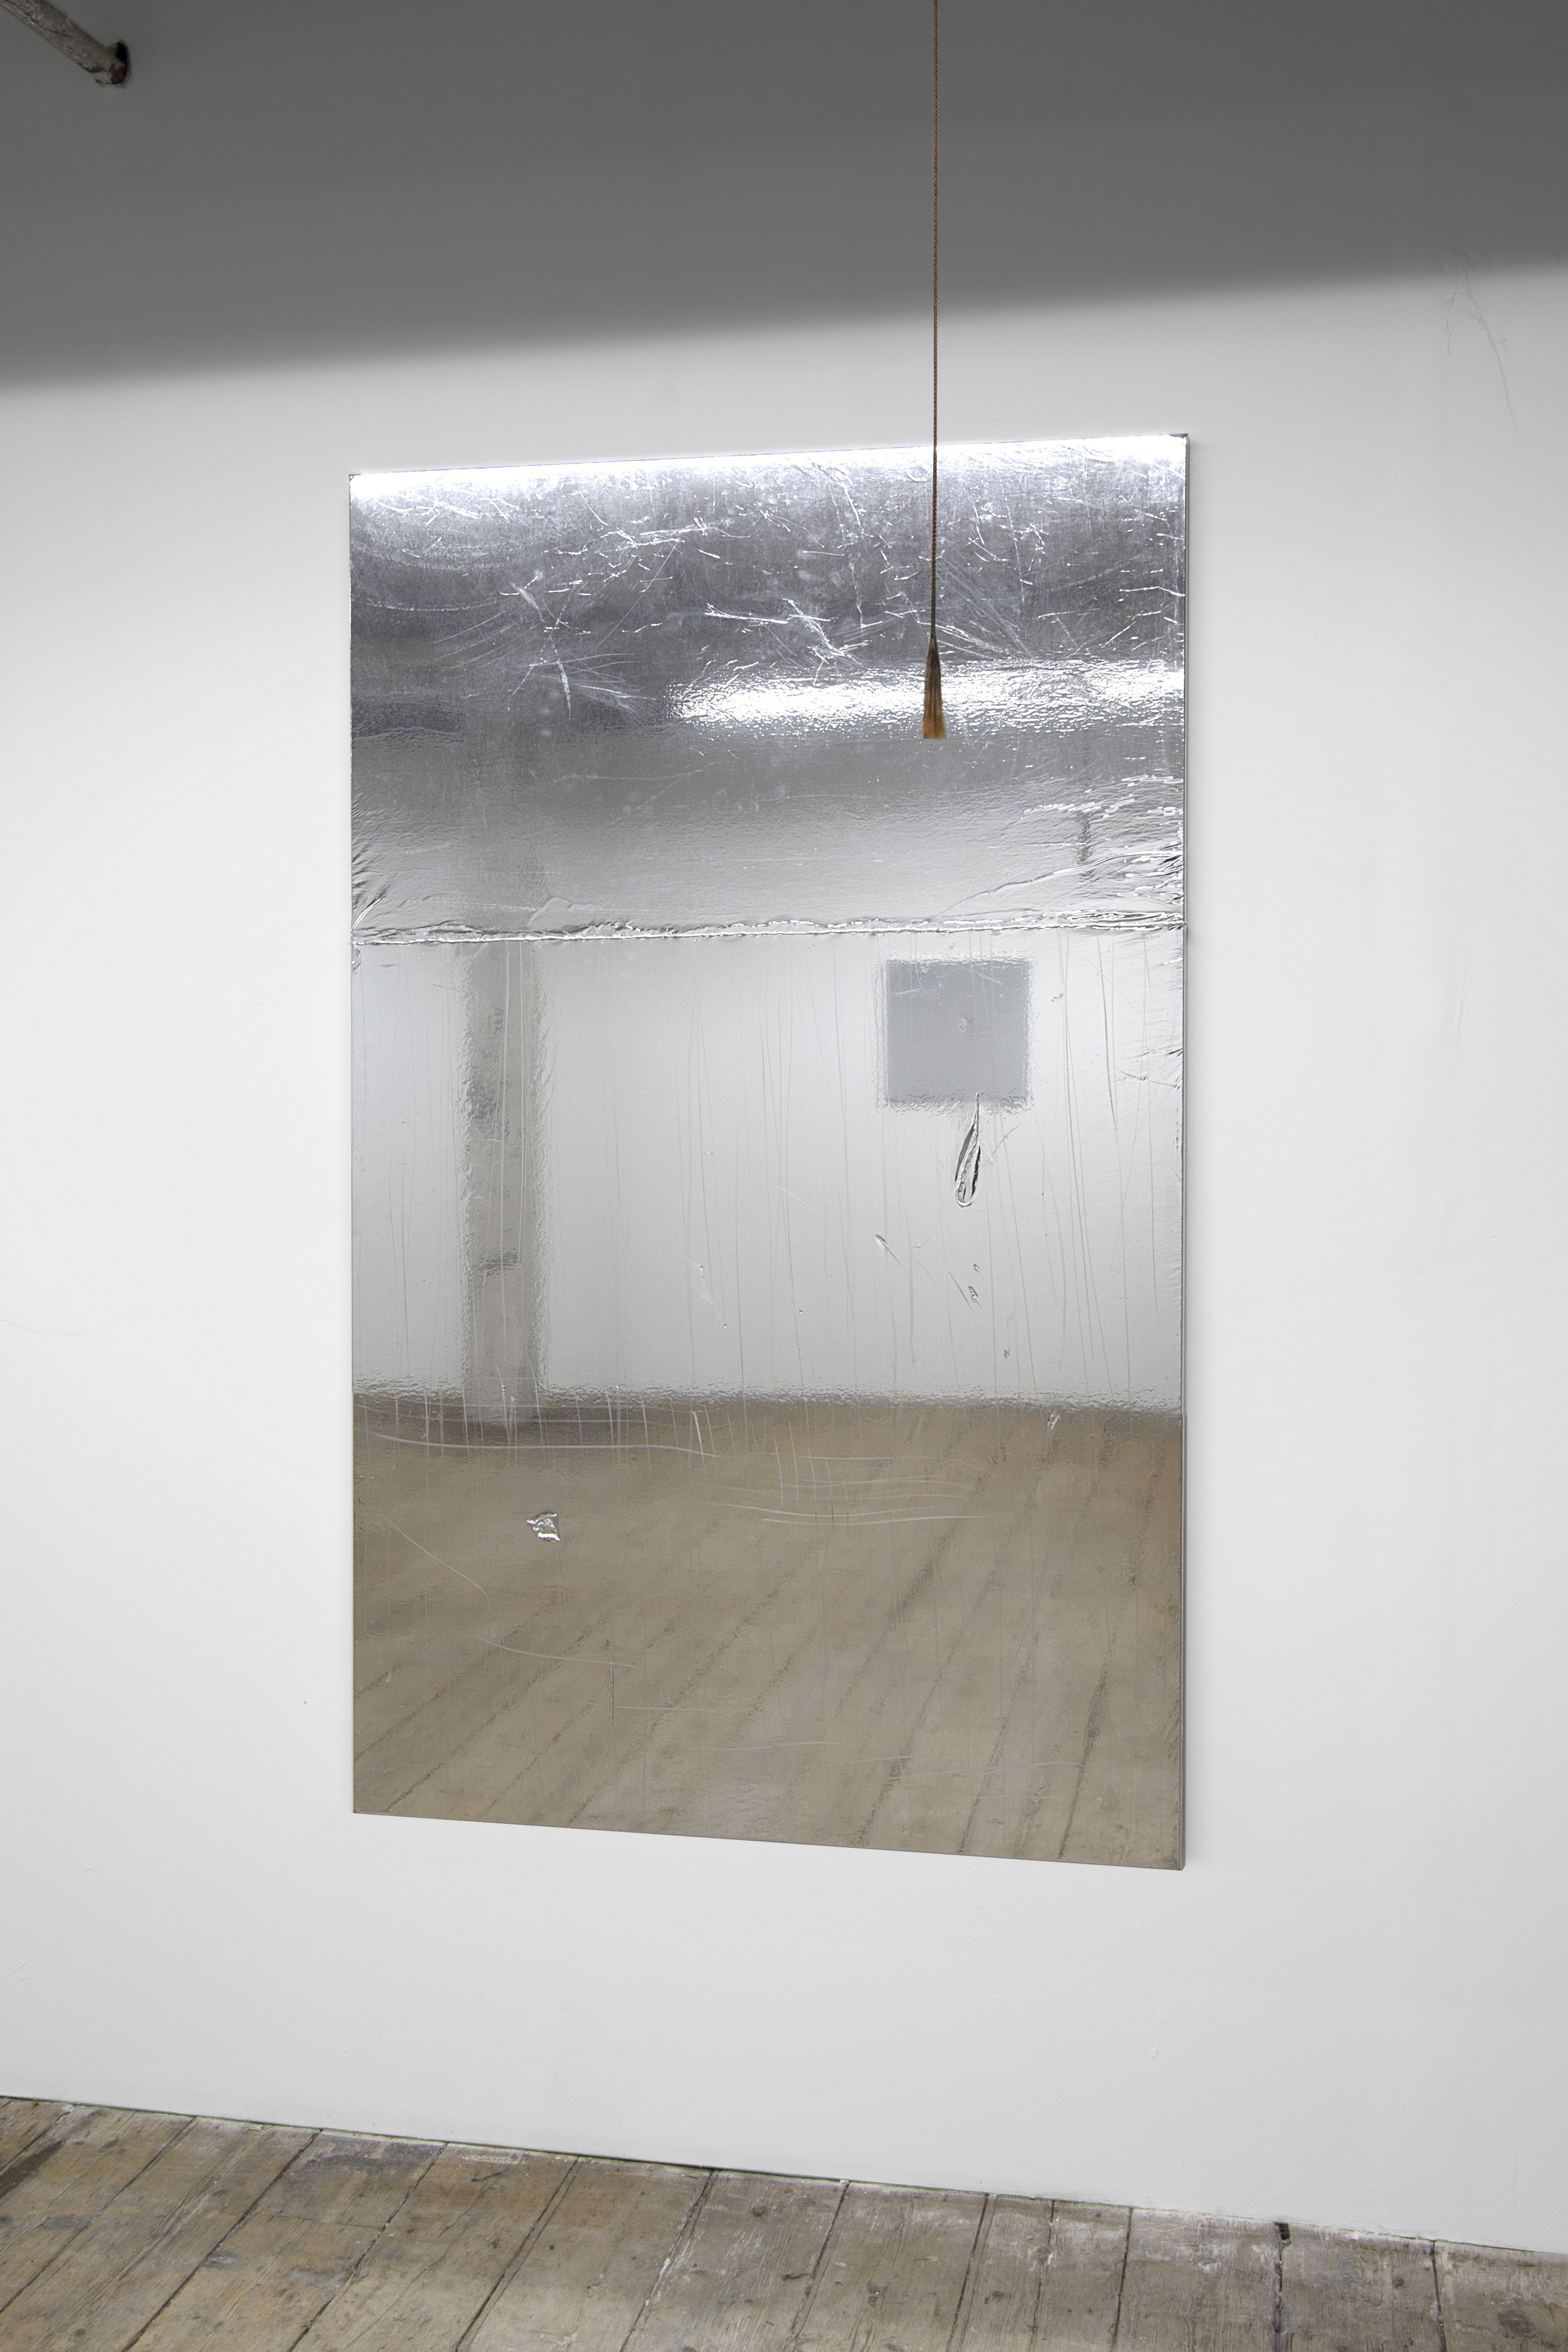 Mikkel Carl  Untitled (You Hate the Fact that You Bought the Dream and They Sold Your One),  2018  mirror foil mounted on canvas, aluminium stretcher bars 75 x 43 inches (190 x 110 cm) MC22